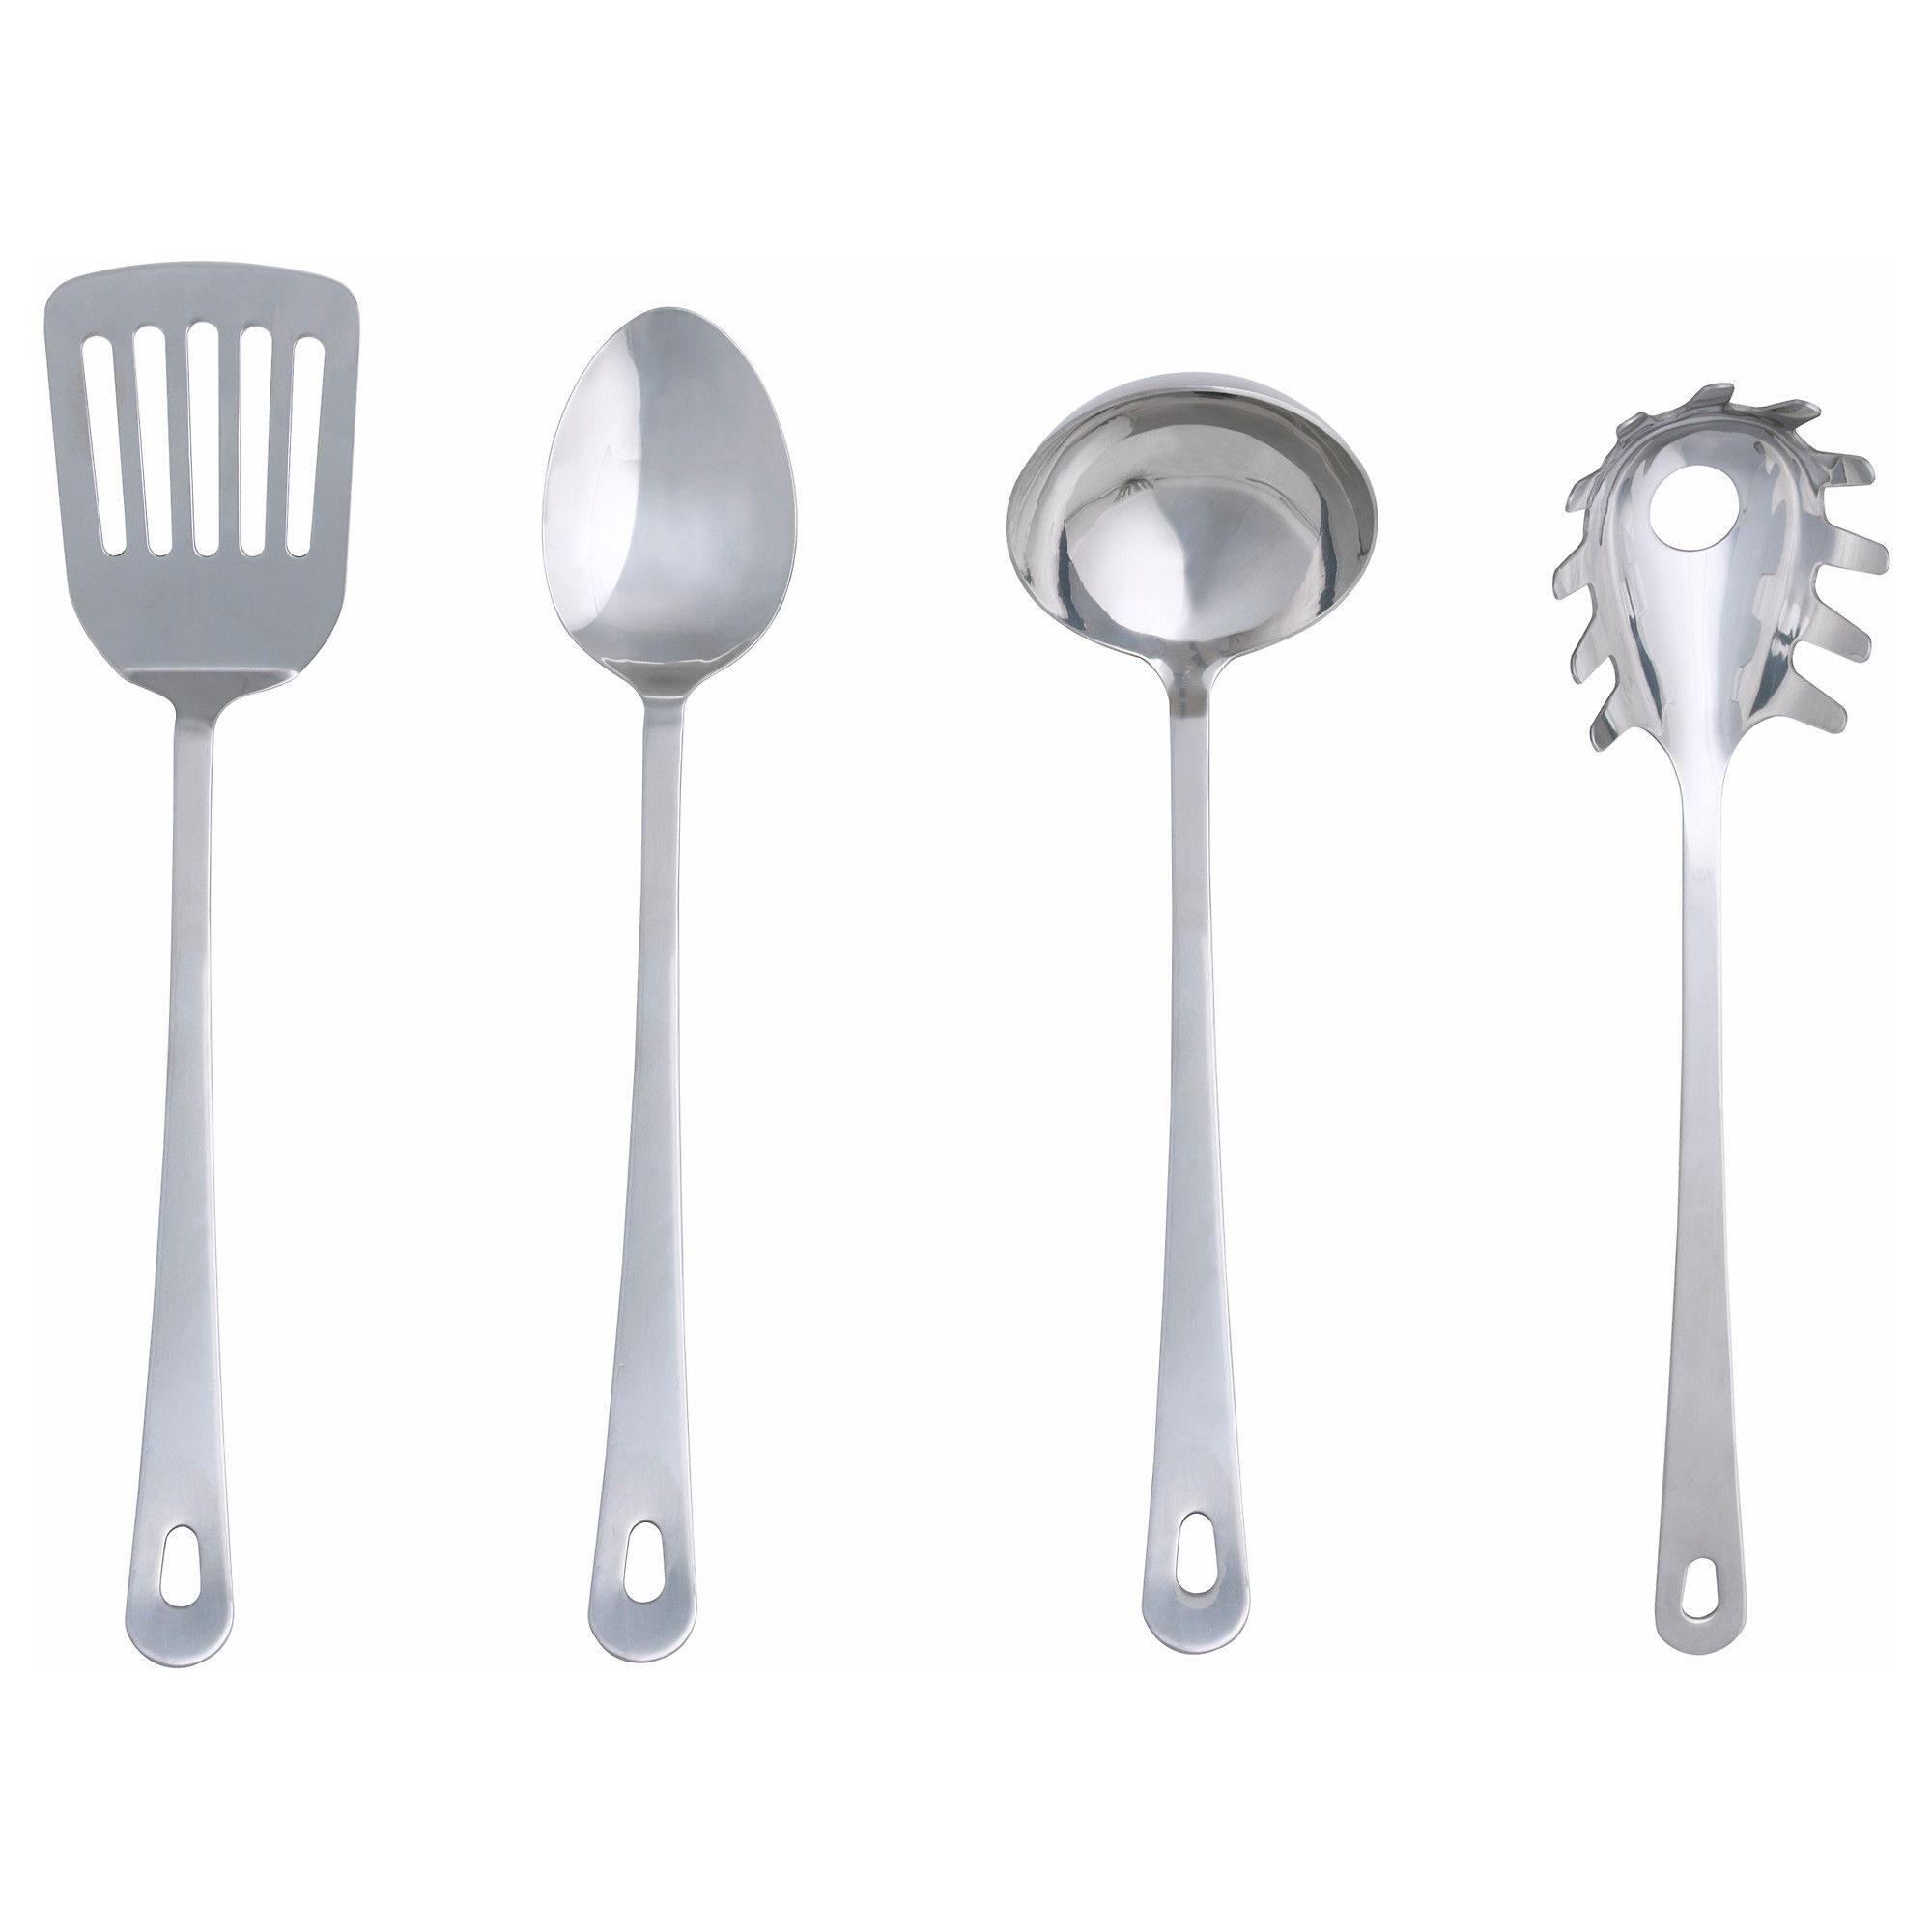 Add Some Shimmer To Your Kitchen With These GRUNKA Kitchen Utensils.